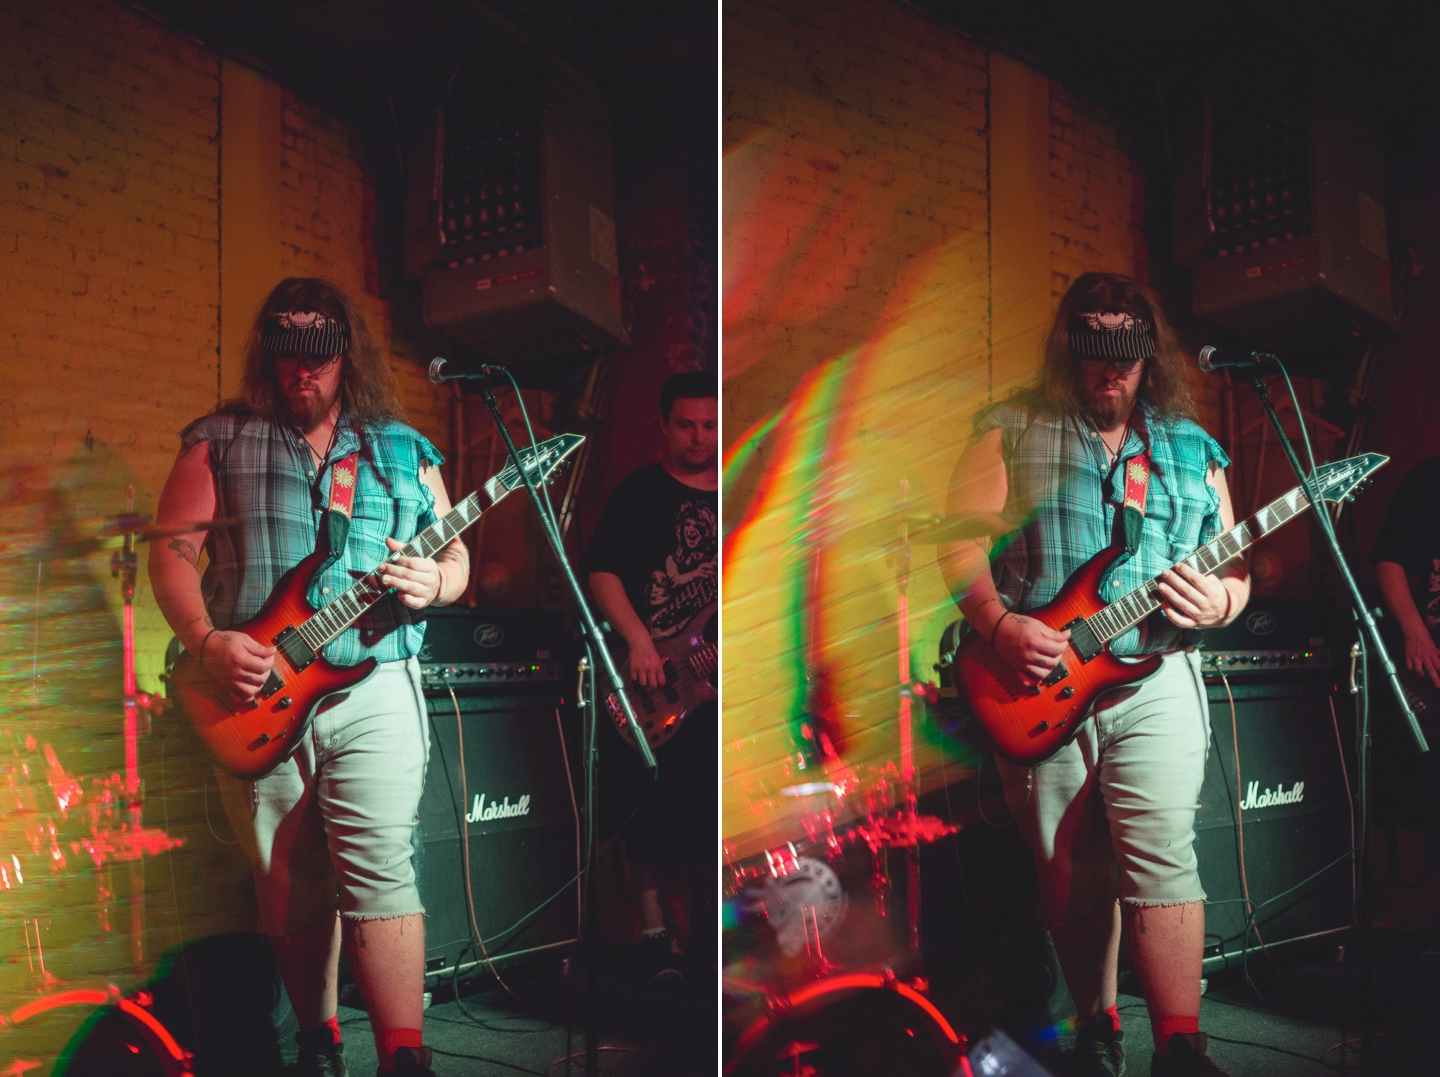 favoritje-band-photography-prisming-don-pedros-brooklyn-nyc-0056